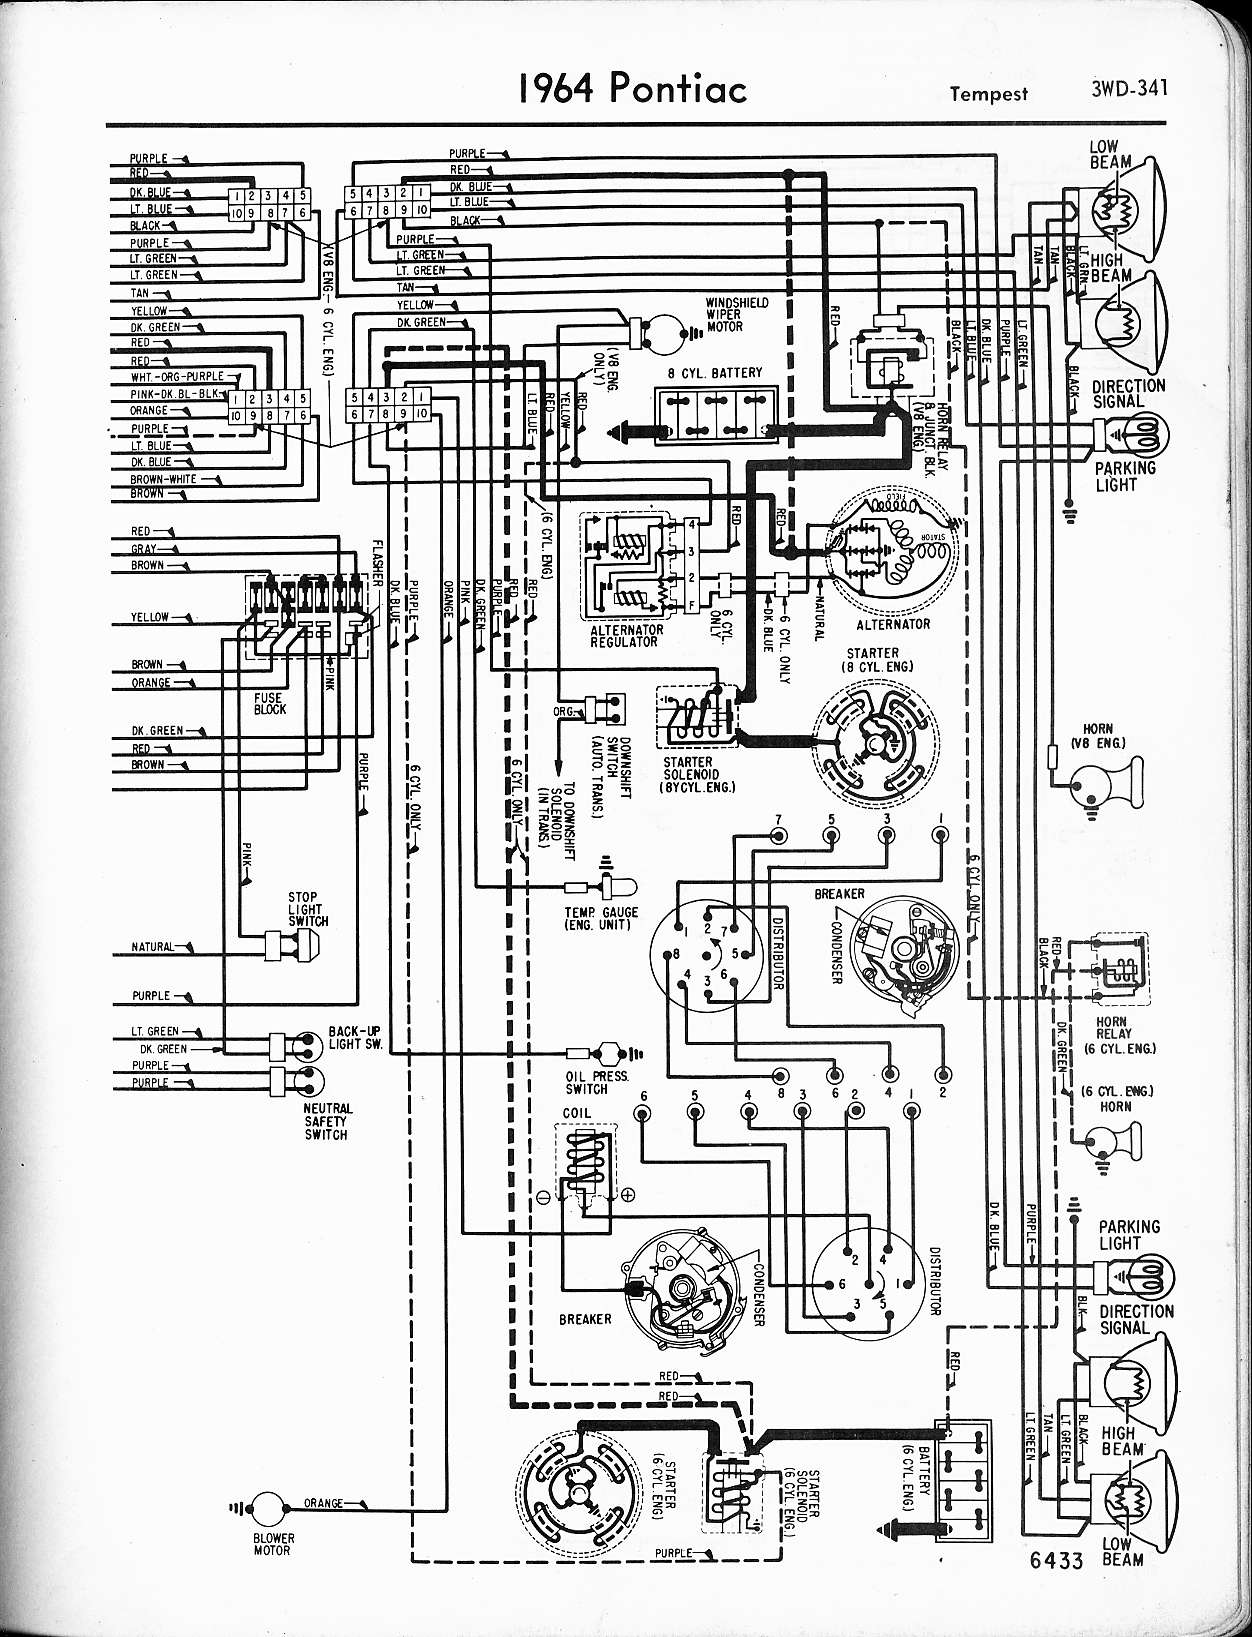 1972 Pontiac Gto Wiring Diagram Reinvent Your Mg Midget Schematic 70 Online Schematics Rh Delvato Co Chevy Nova